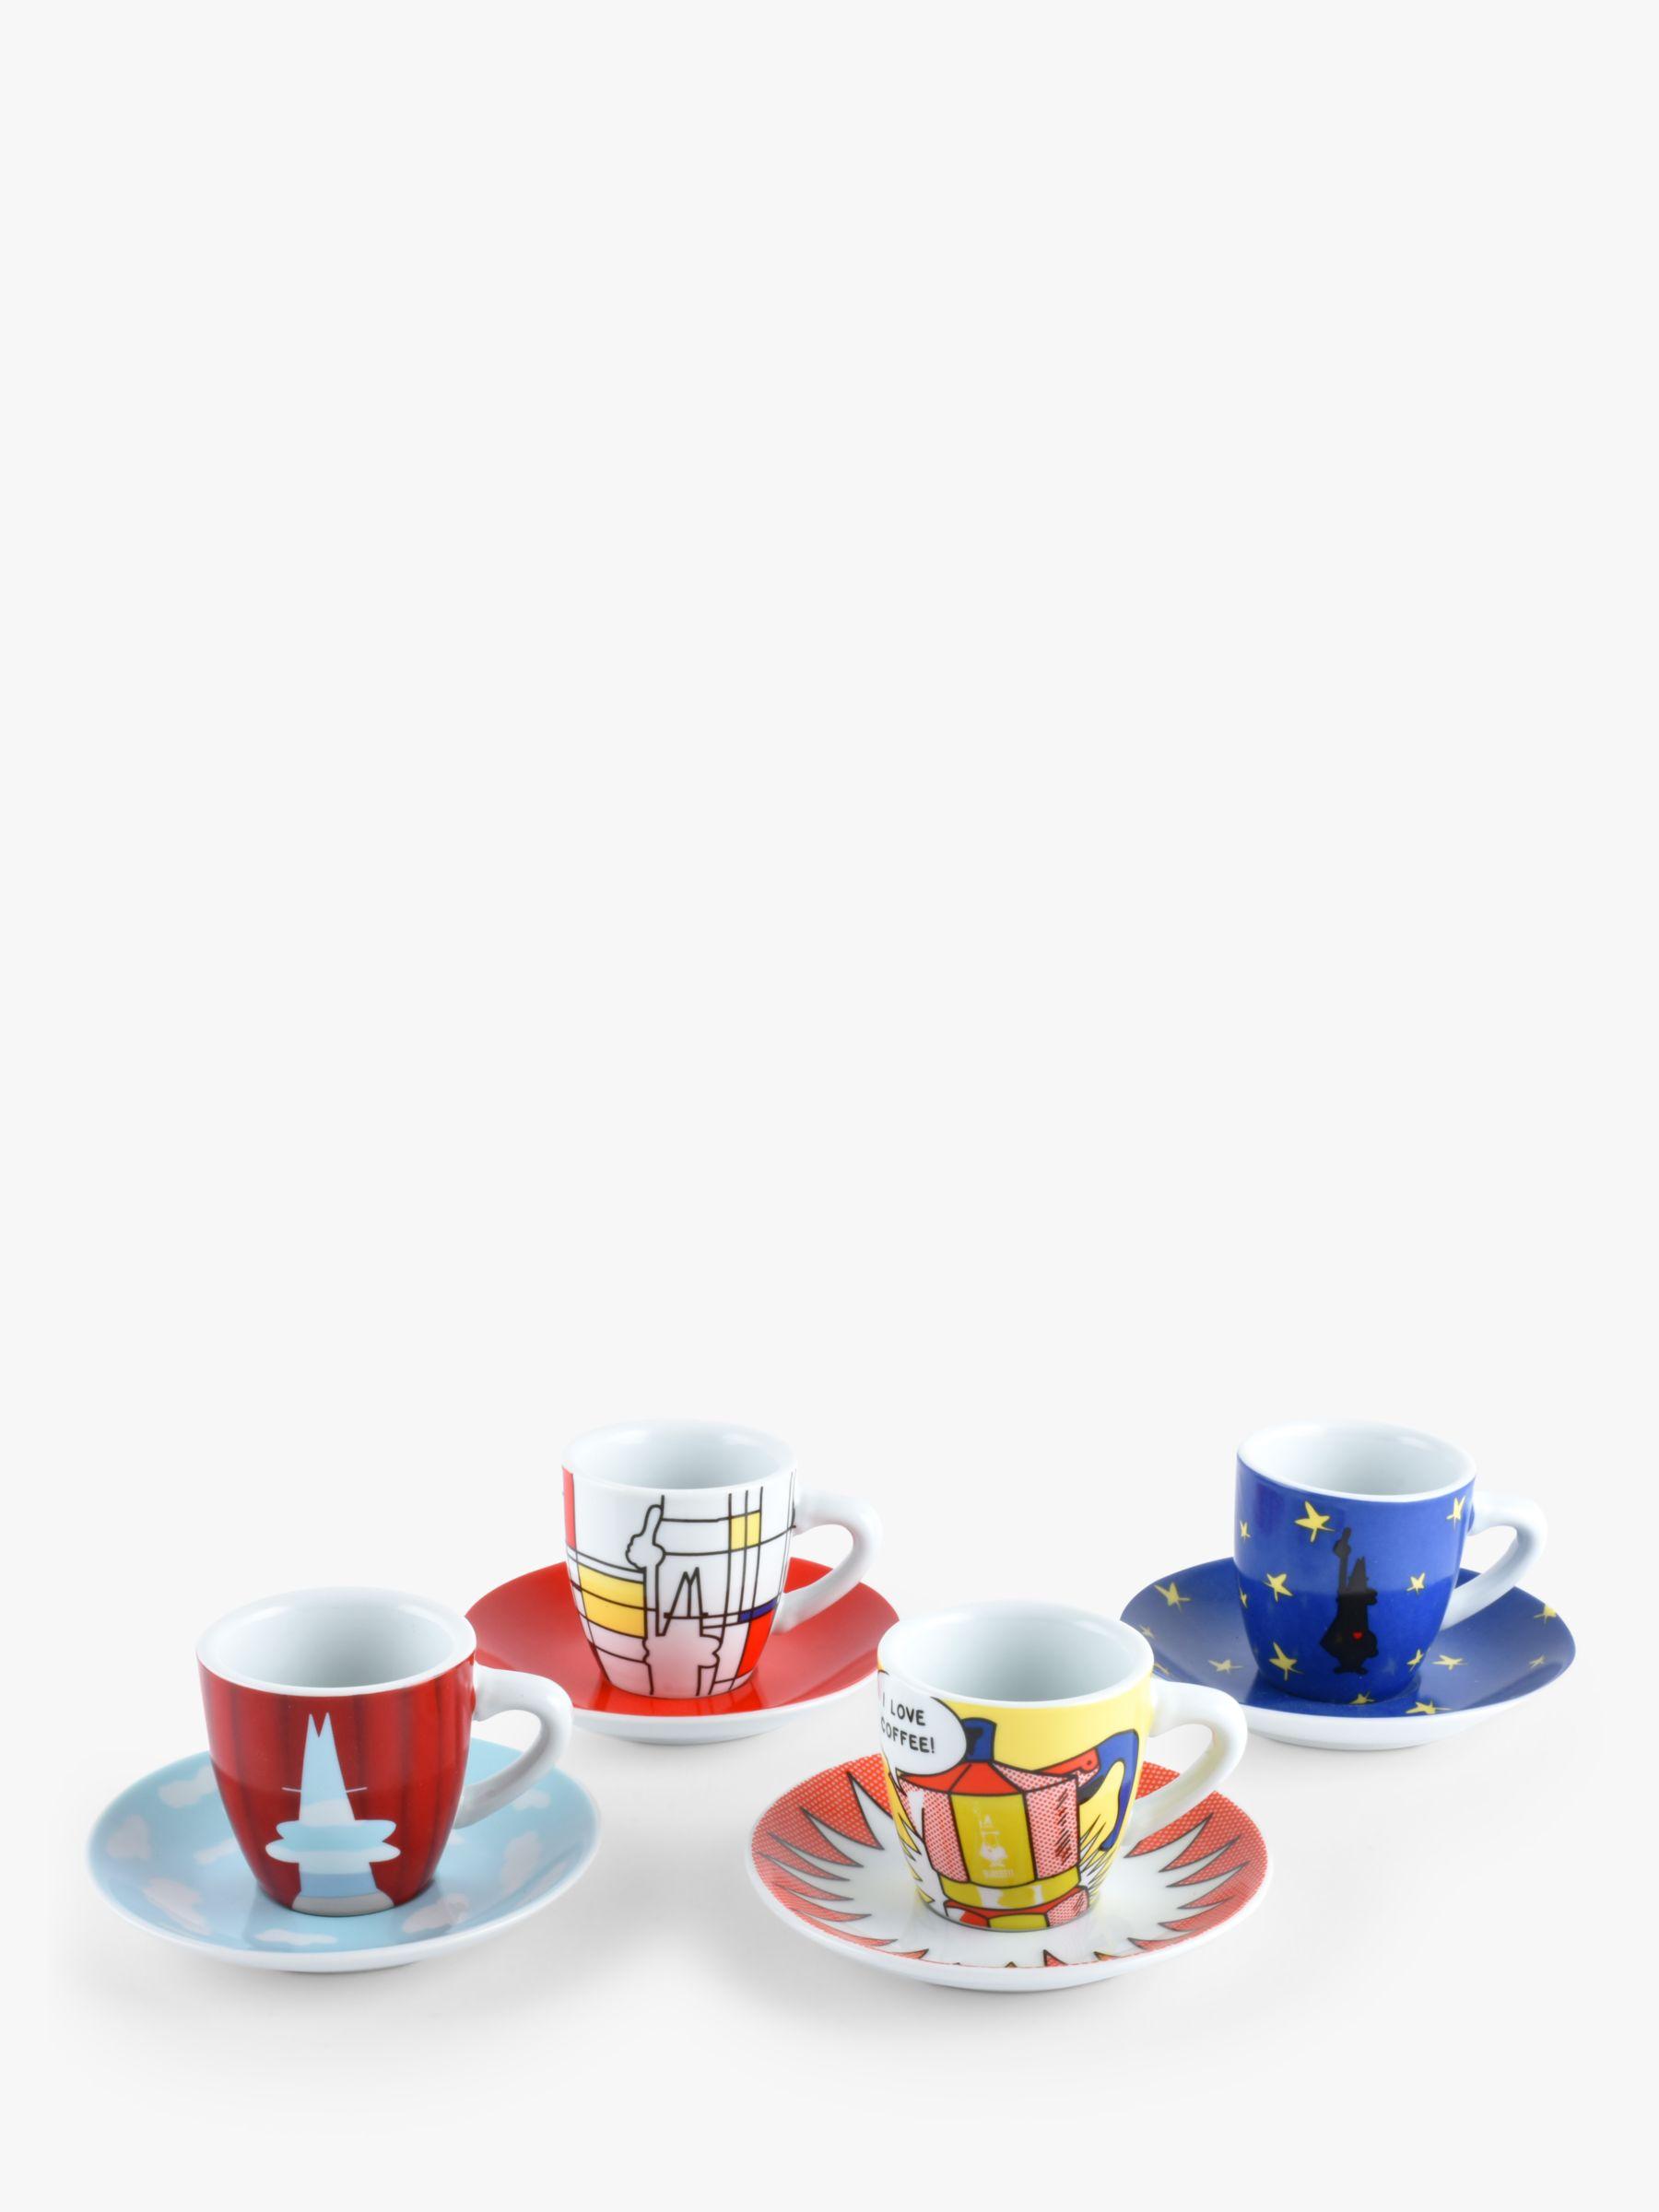 Bialetti Bialetti Art Espresso Coffee Cup & Saucer, Set of 4, 40ml, Assorted